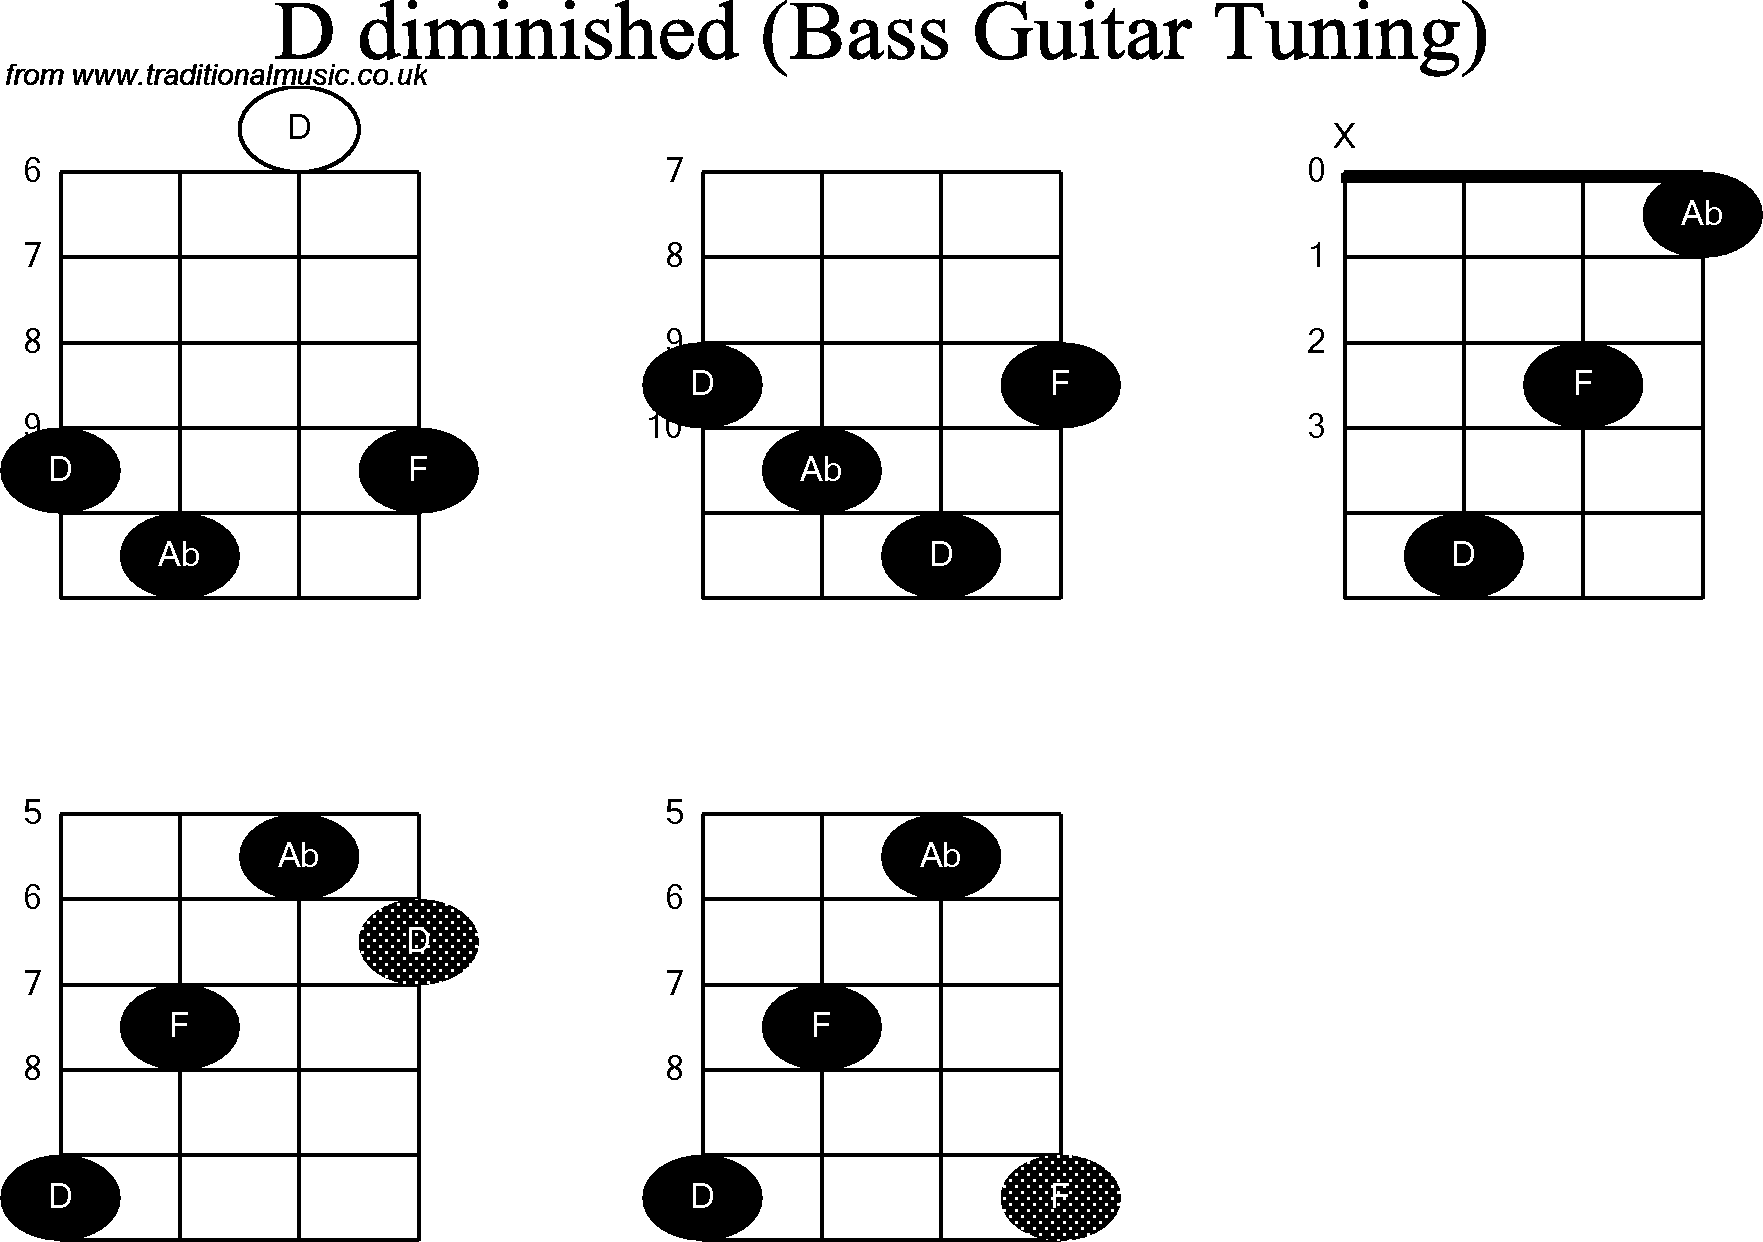 Bass Guitar Chord Diagrams For D Diminished